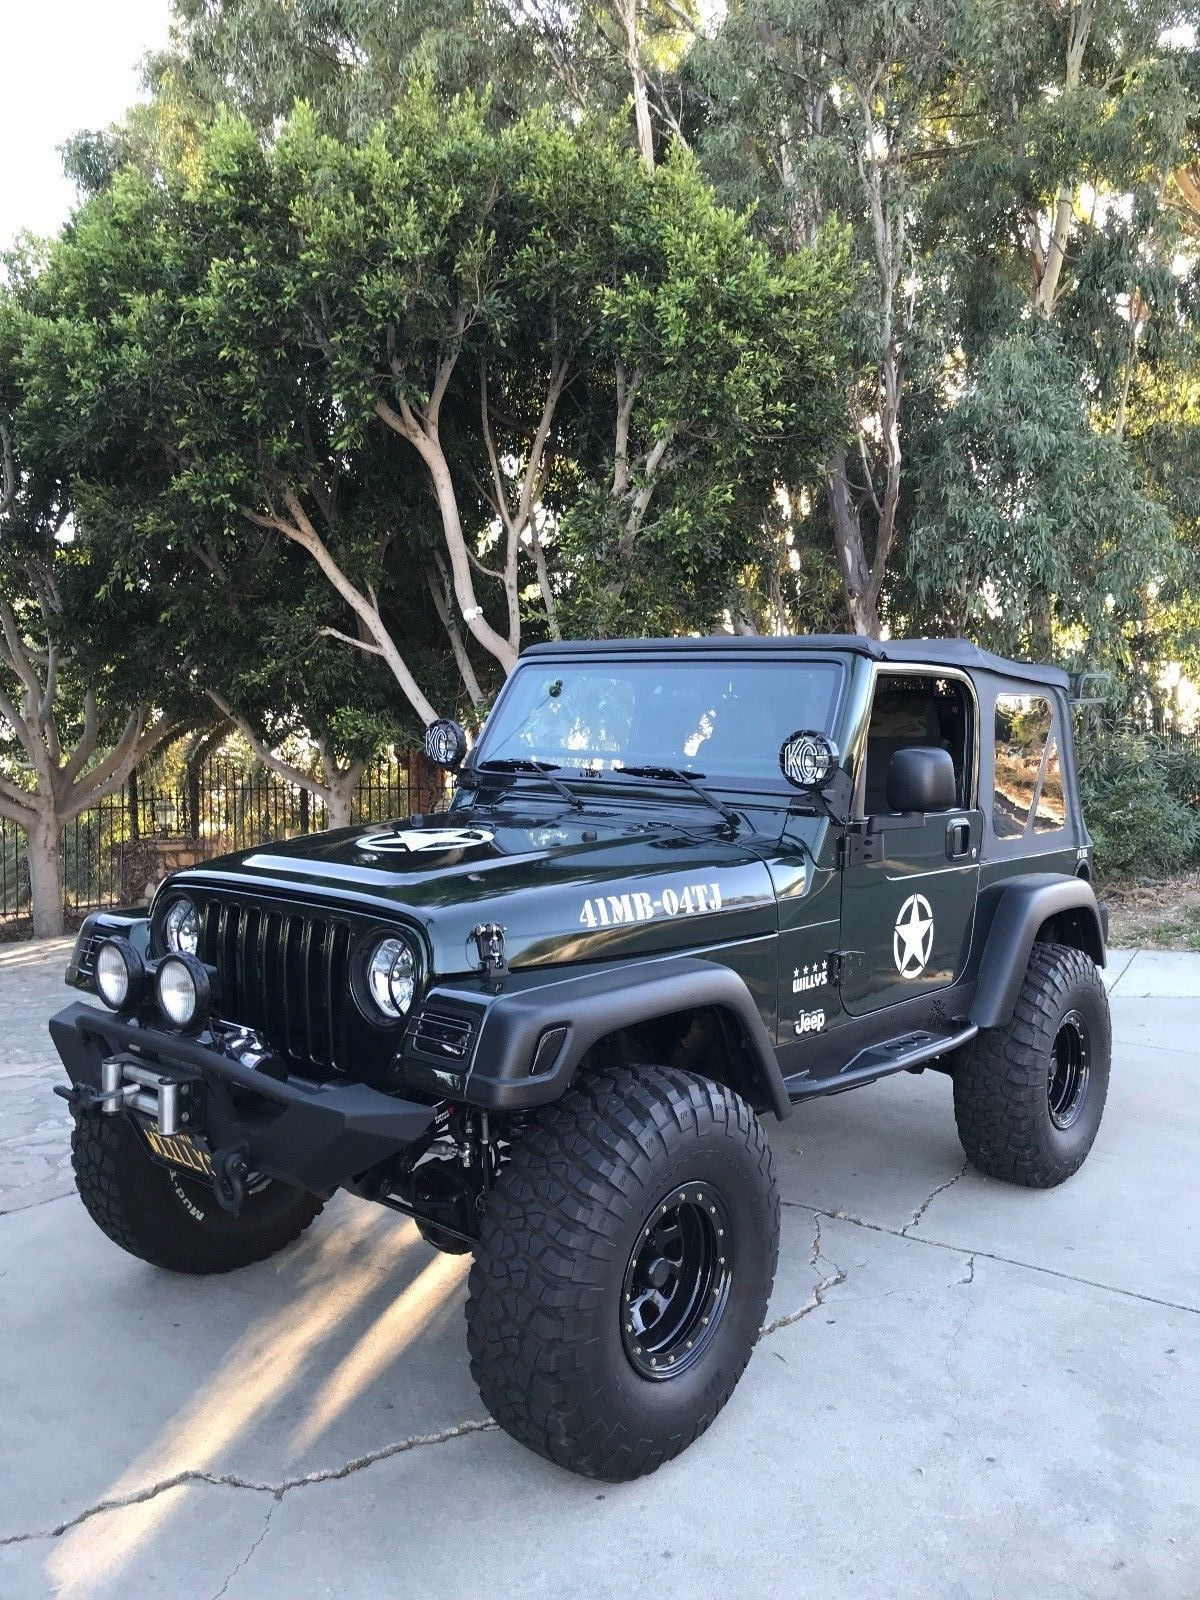 Willys Edition 2004 Jeep Wrangler 4 4 For Sale 2004 Jeep Wrangler Jeep Wrangler Jeep